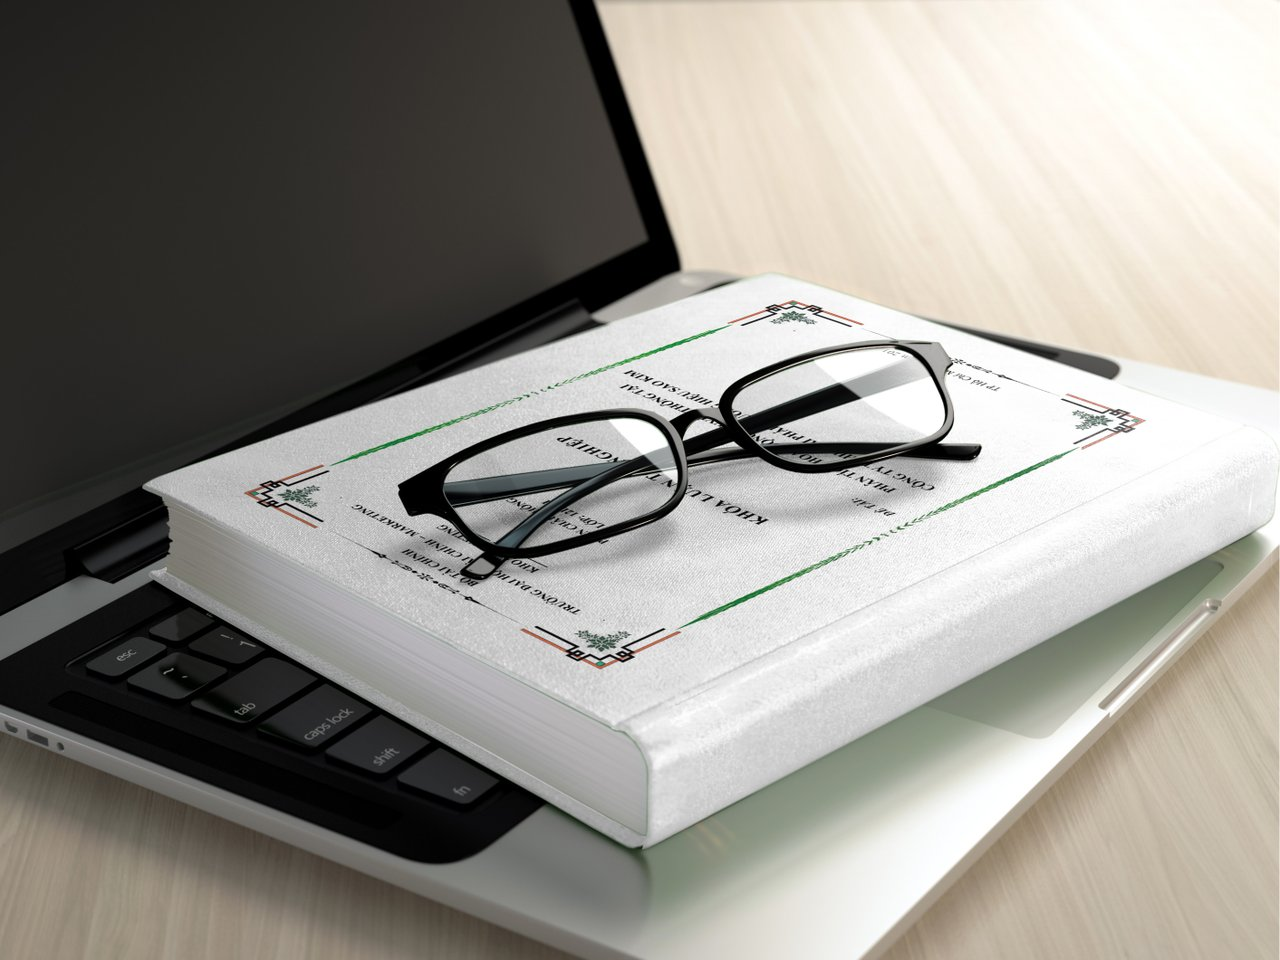 glasses, book and laptop on table